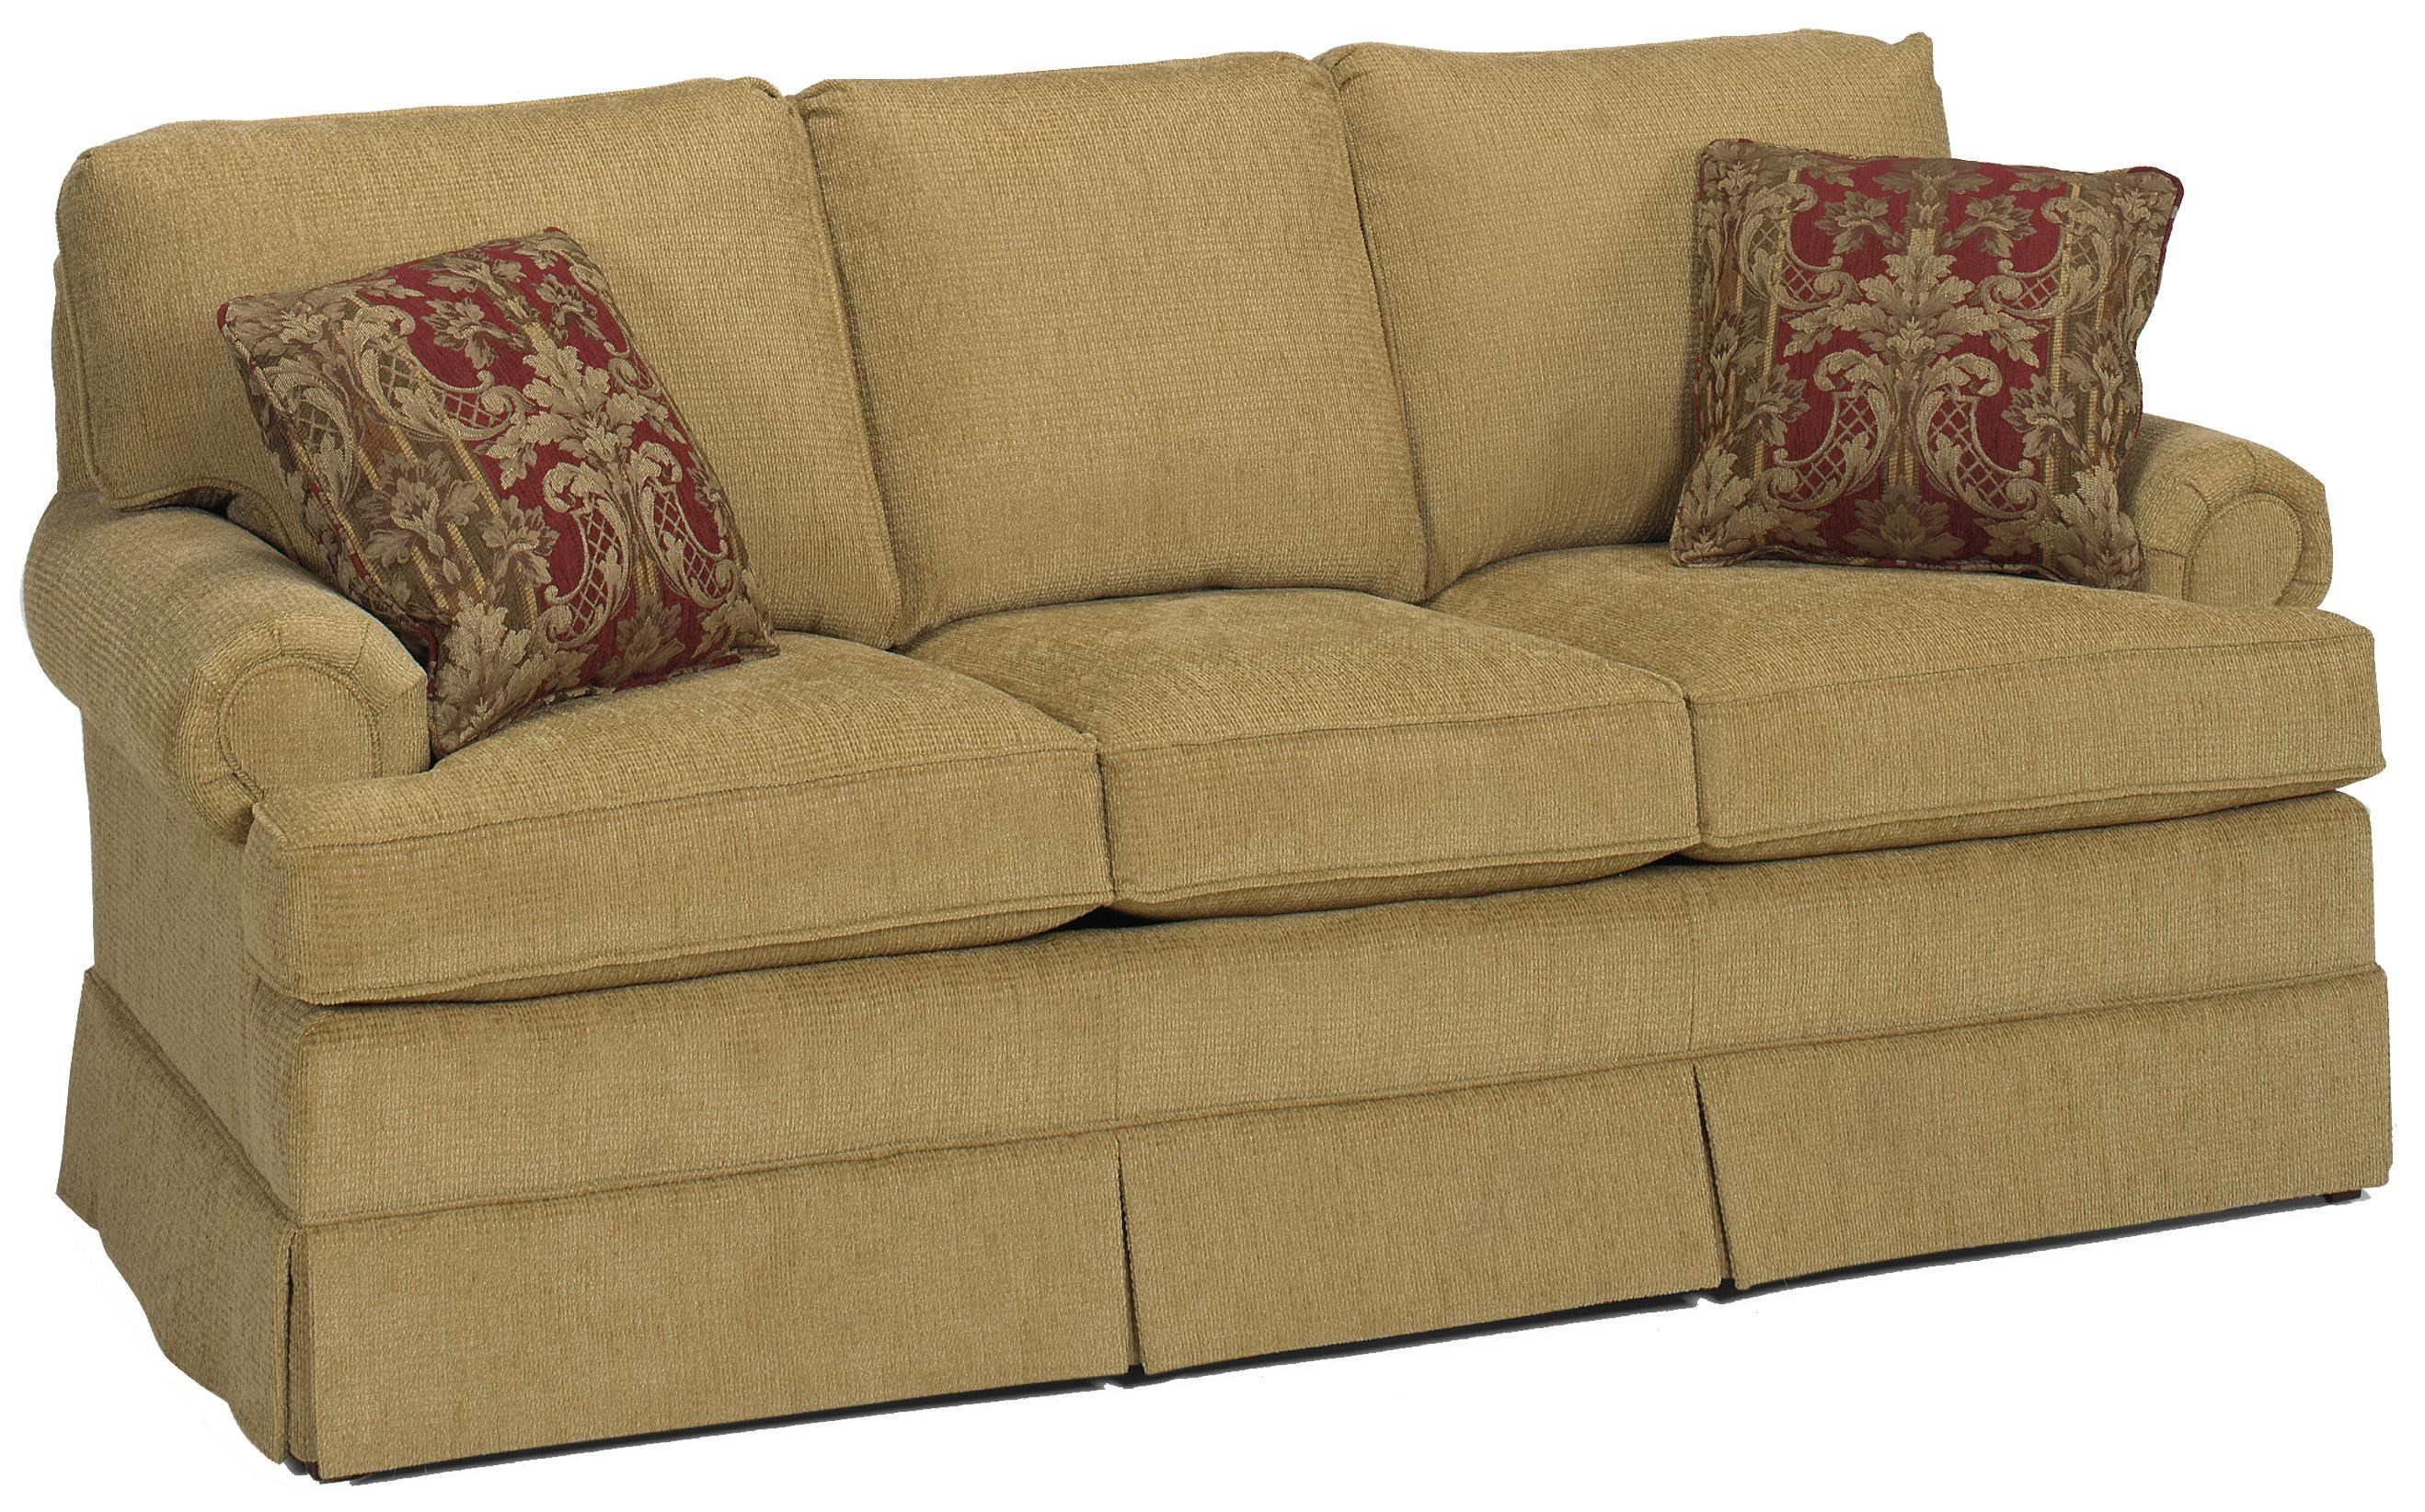 Temple Furniture AmericanSofa